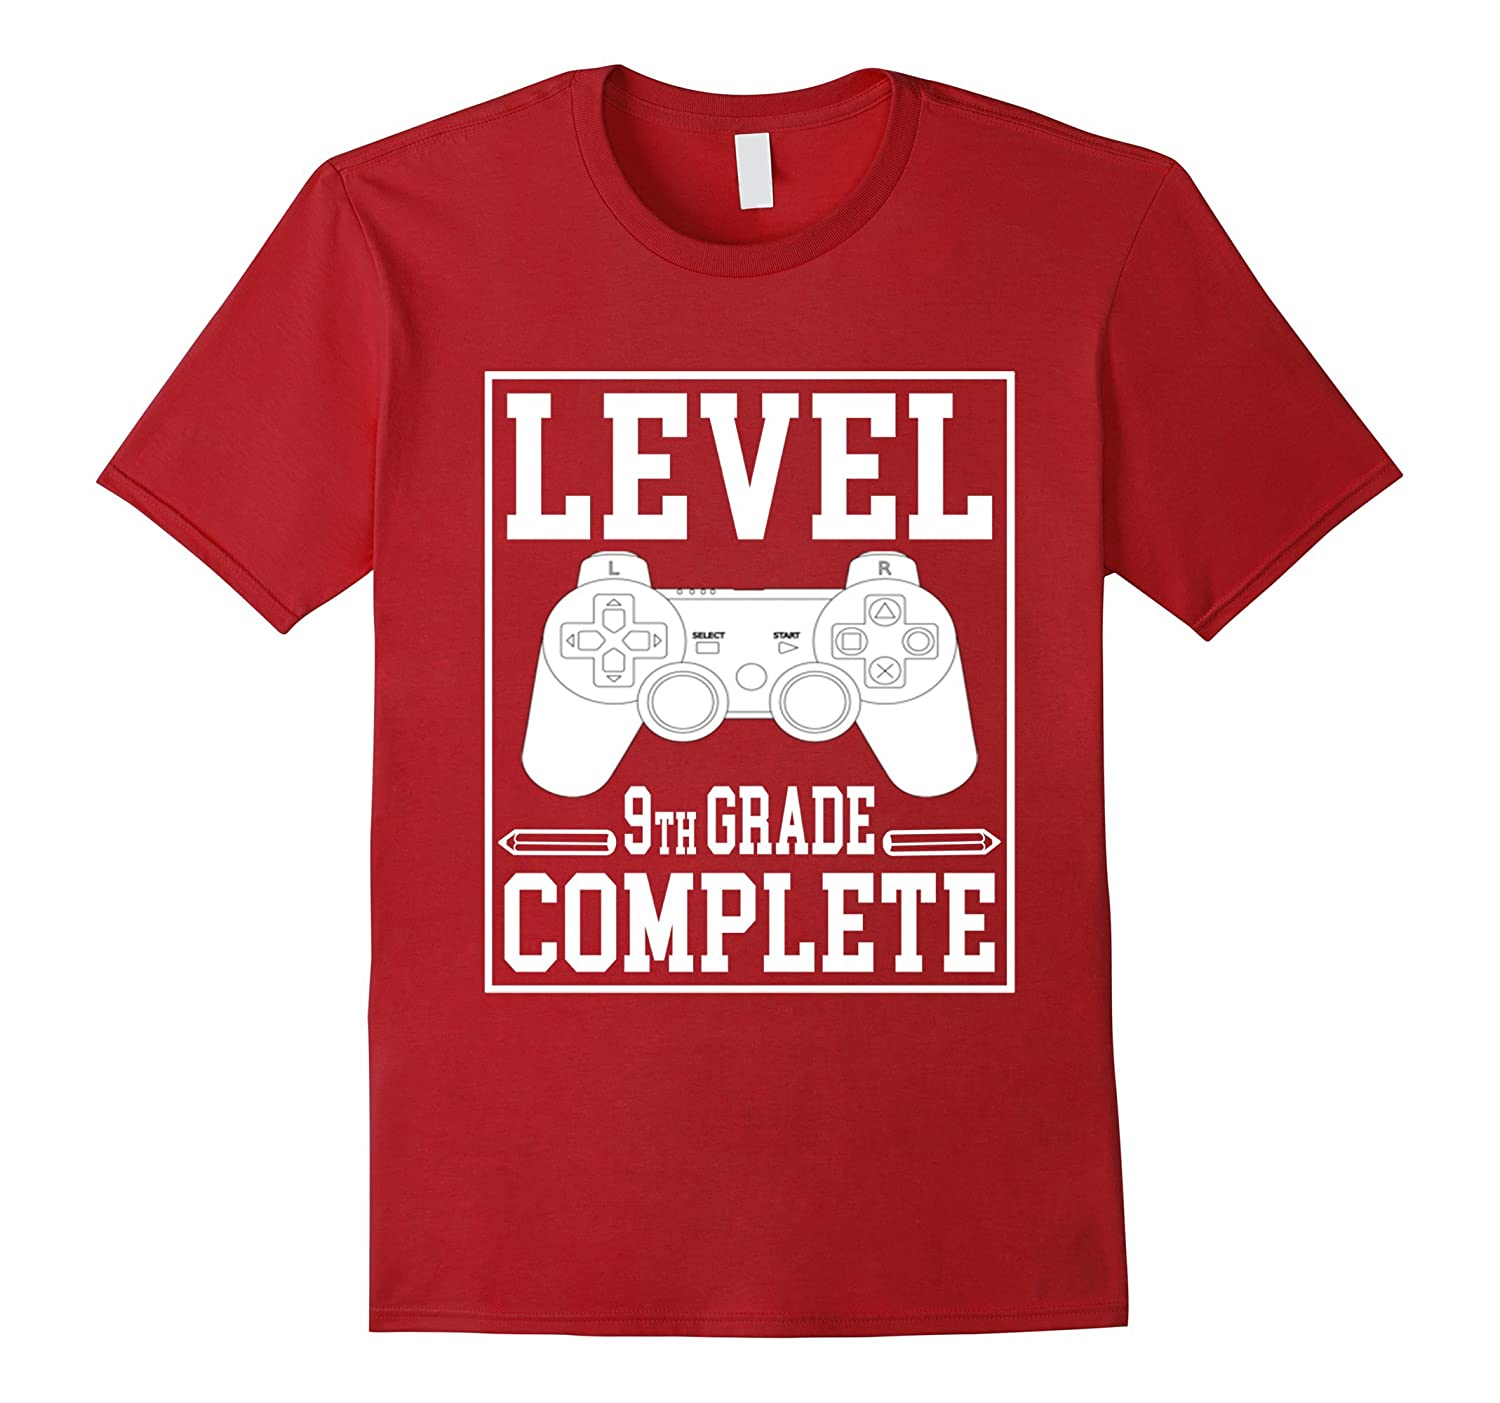 Level 9th Grade Complete T-Shirt for Boys and Girls-Art